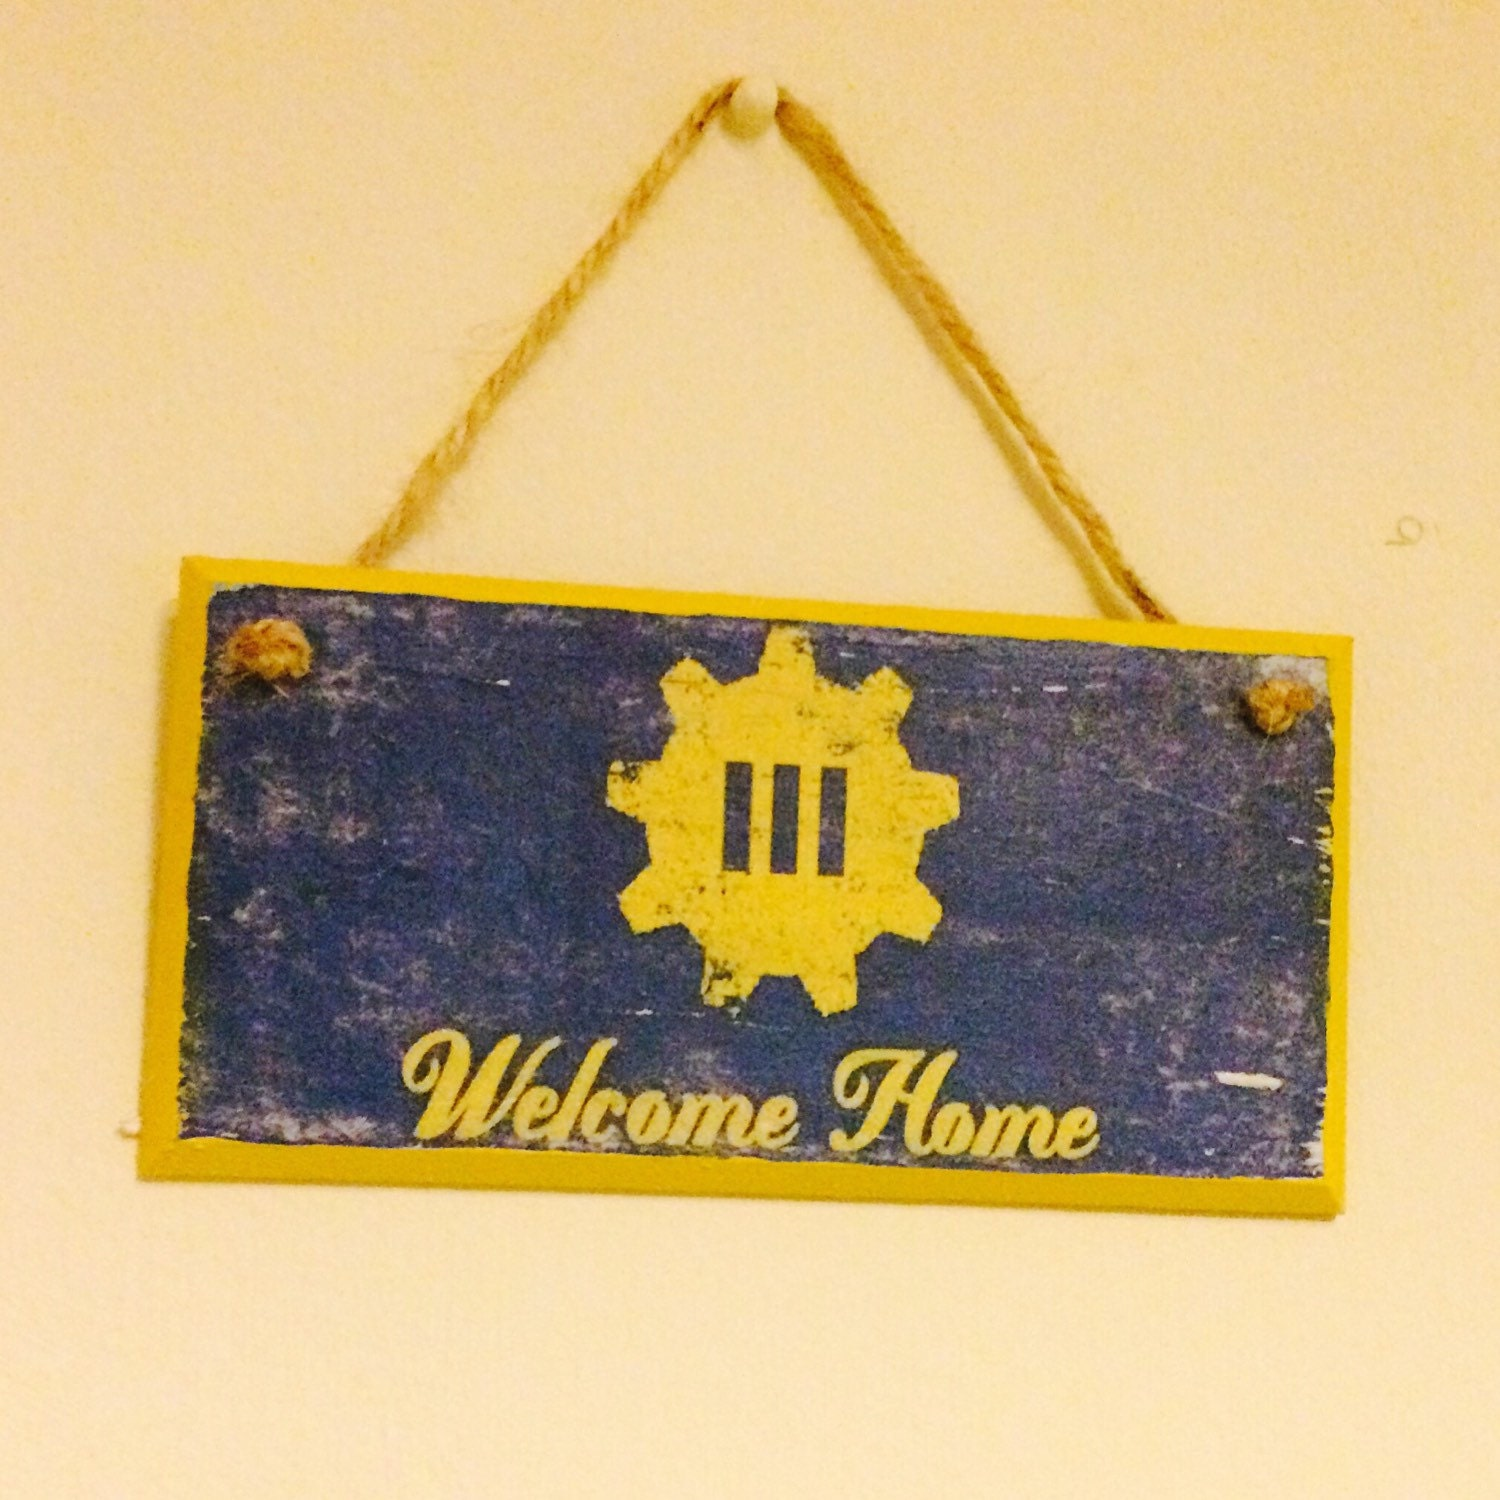 Welcome Home Fallout 4 inspired wall plaque door sign